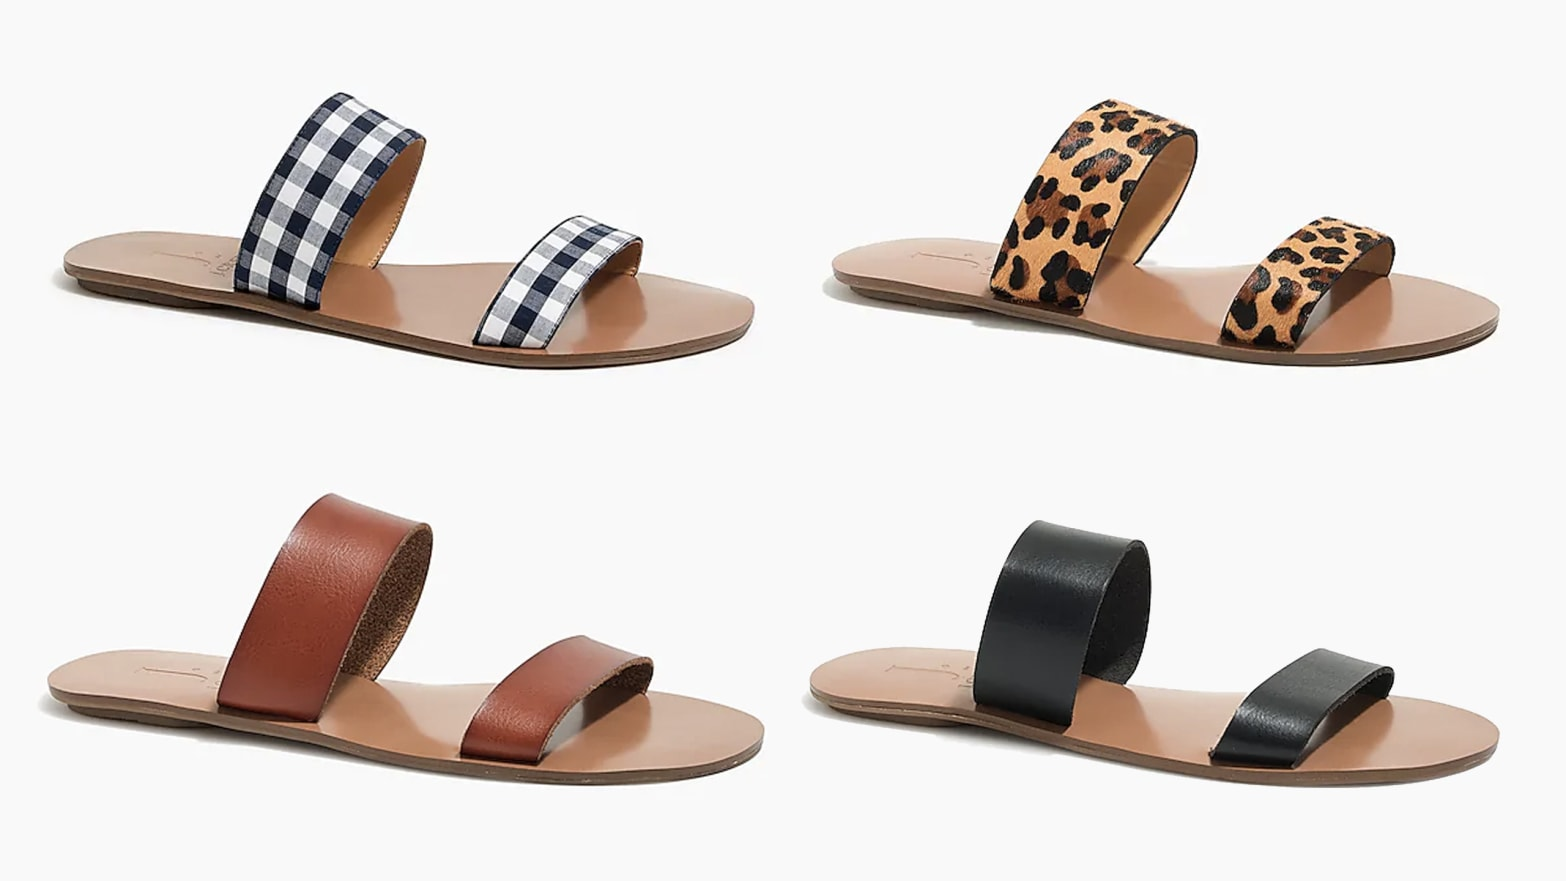 J.Crew Factory Makes the Perfect Summer Sandal